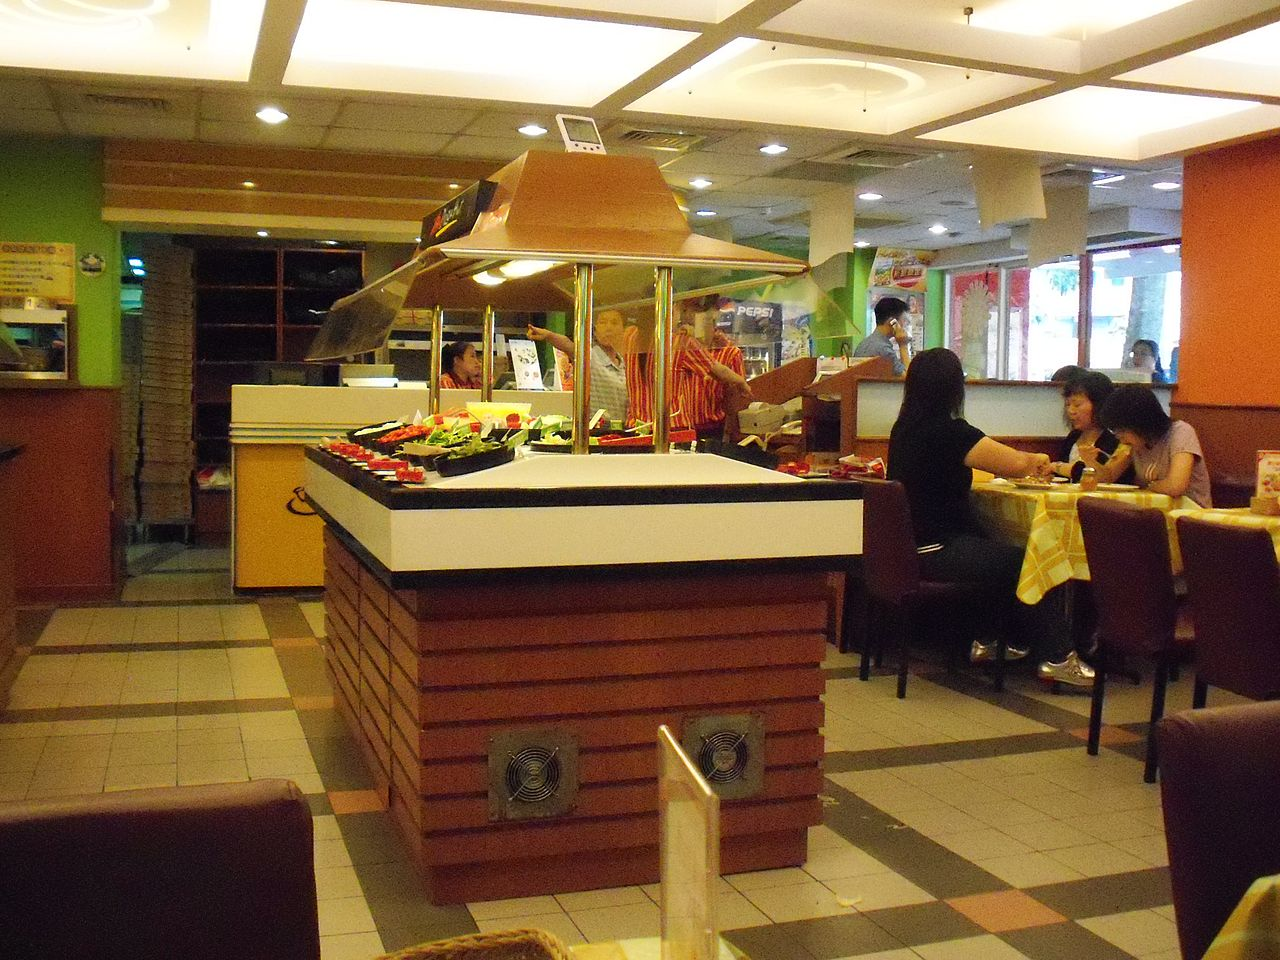 File:Salad Bar of Pizza Hut Nangang Restaurant 20090822b.JPG - Wikimedia Commons